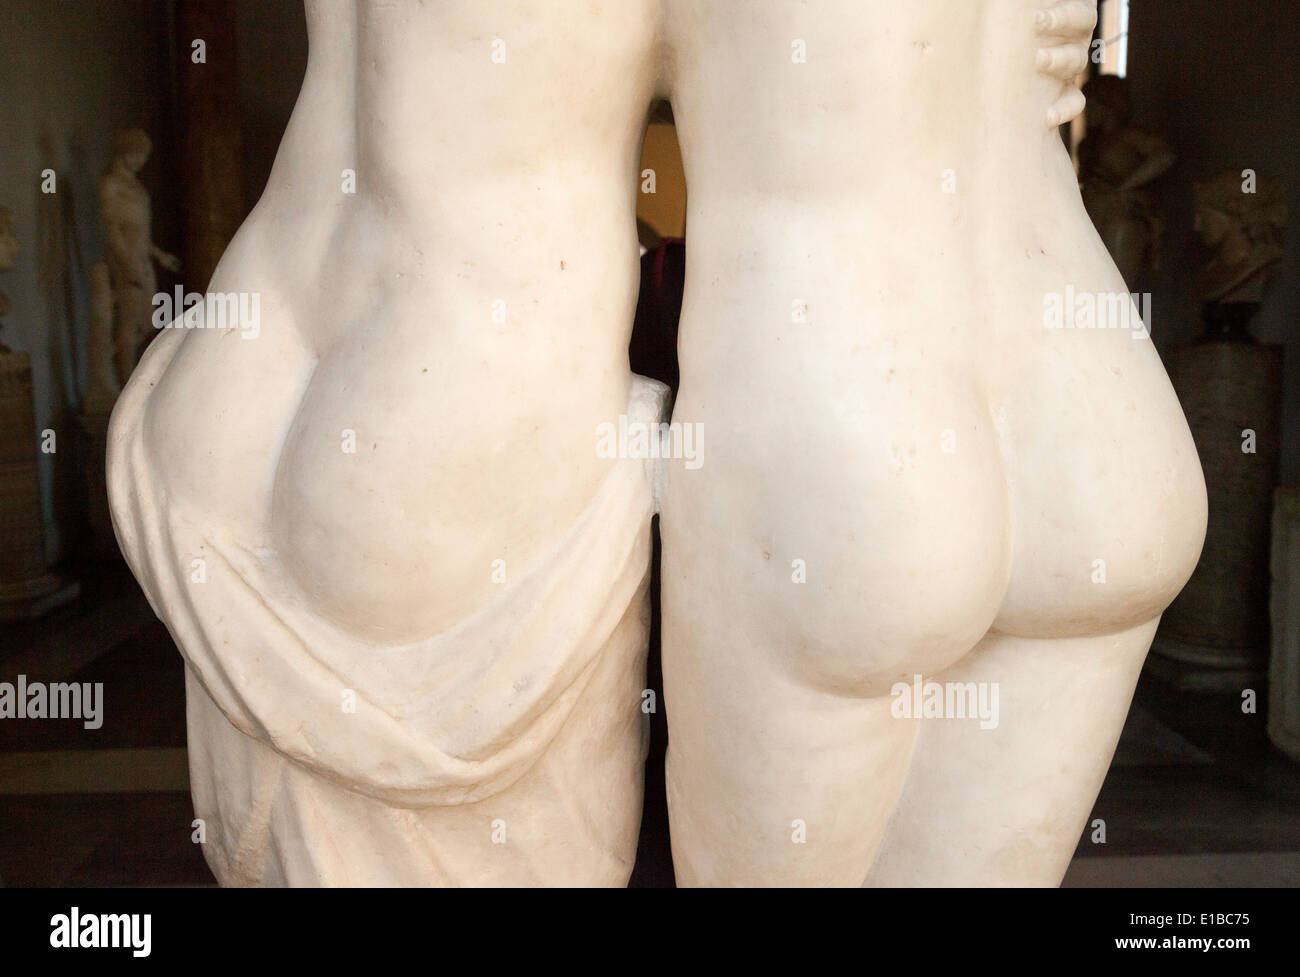 Rear view of the bottoms of two statues from ancient Rome, Musei Capitolini, Rome Italy Stock Photo